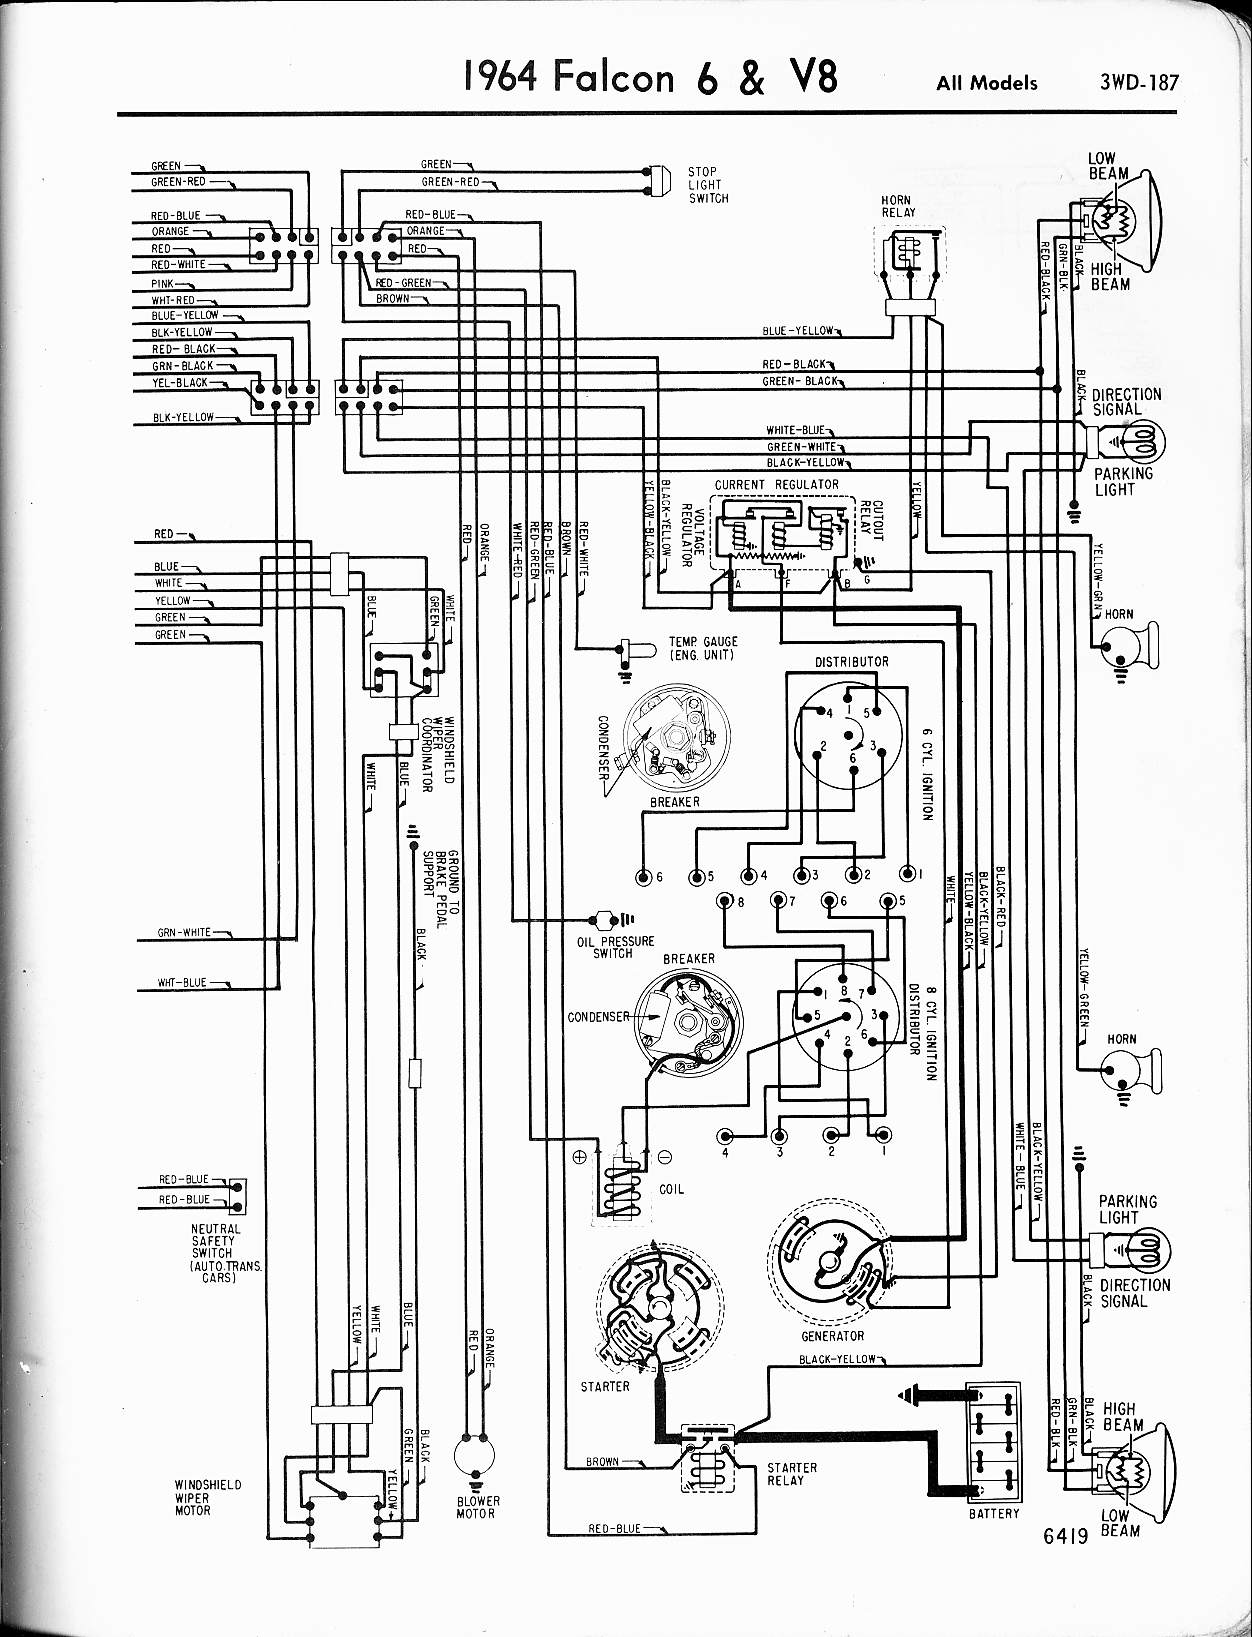 MWire5765 187 57 65 ford wiring diagrams 64 falcon wiring diagram at bakdesigns.co